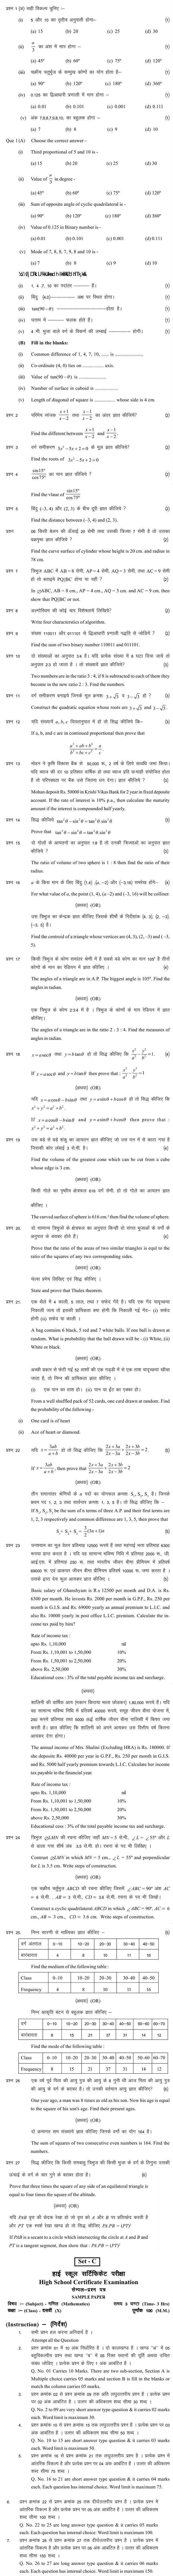 Chattisgarh Board Class 10 Mathematics Sample Paper